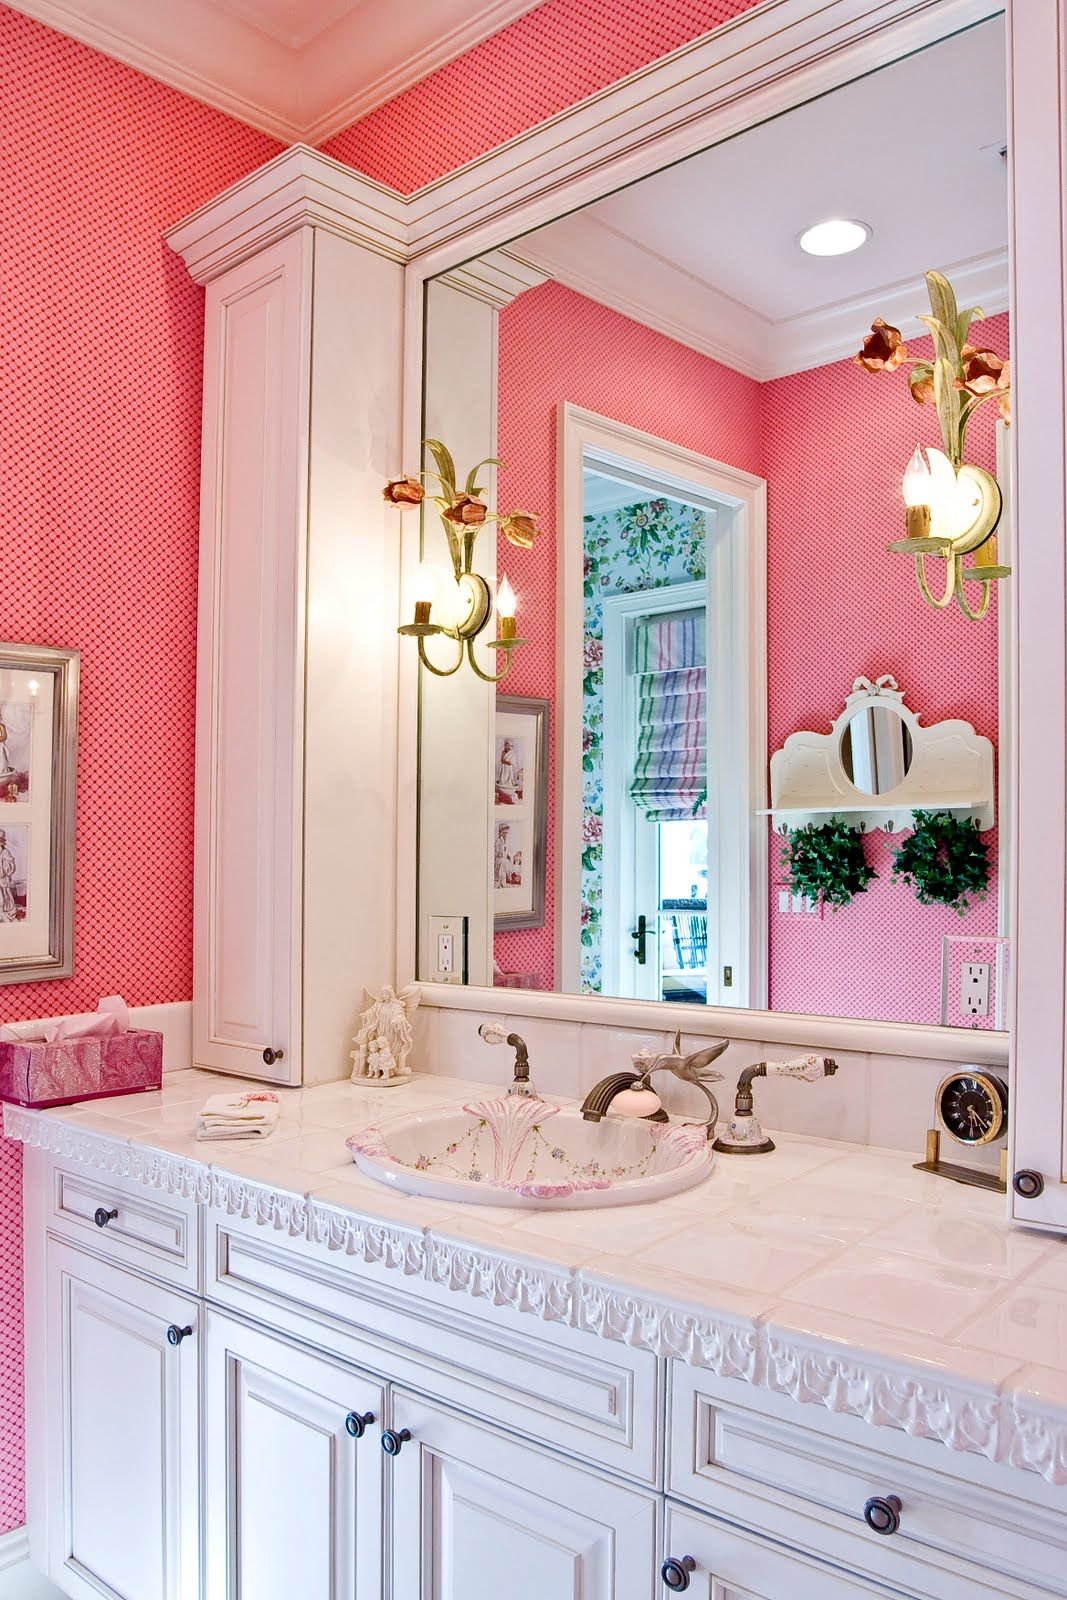 30 Bathroom Sets Design Ideas With Images Bathroom Ideas